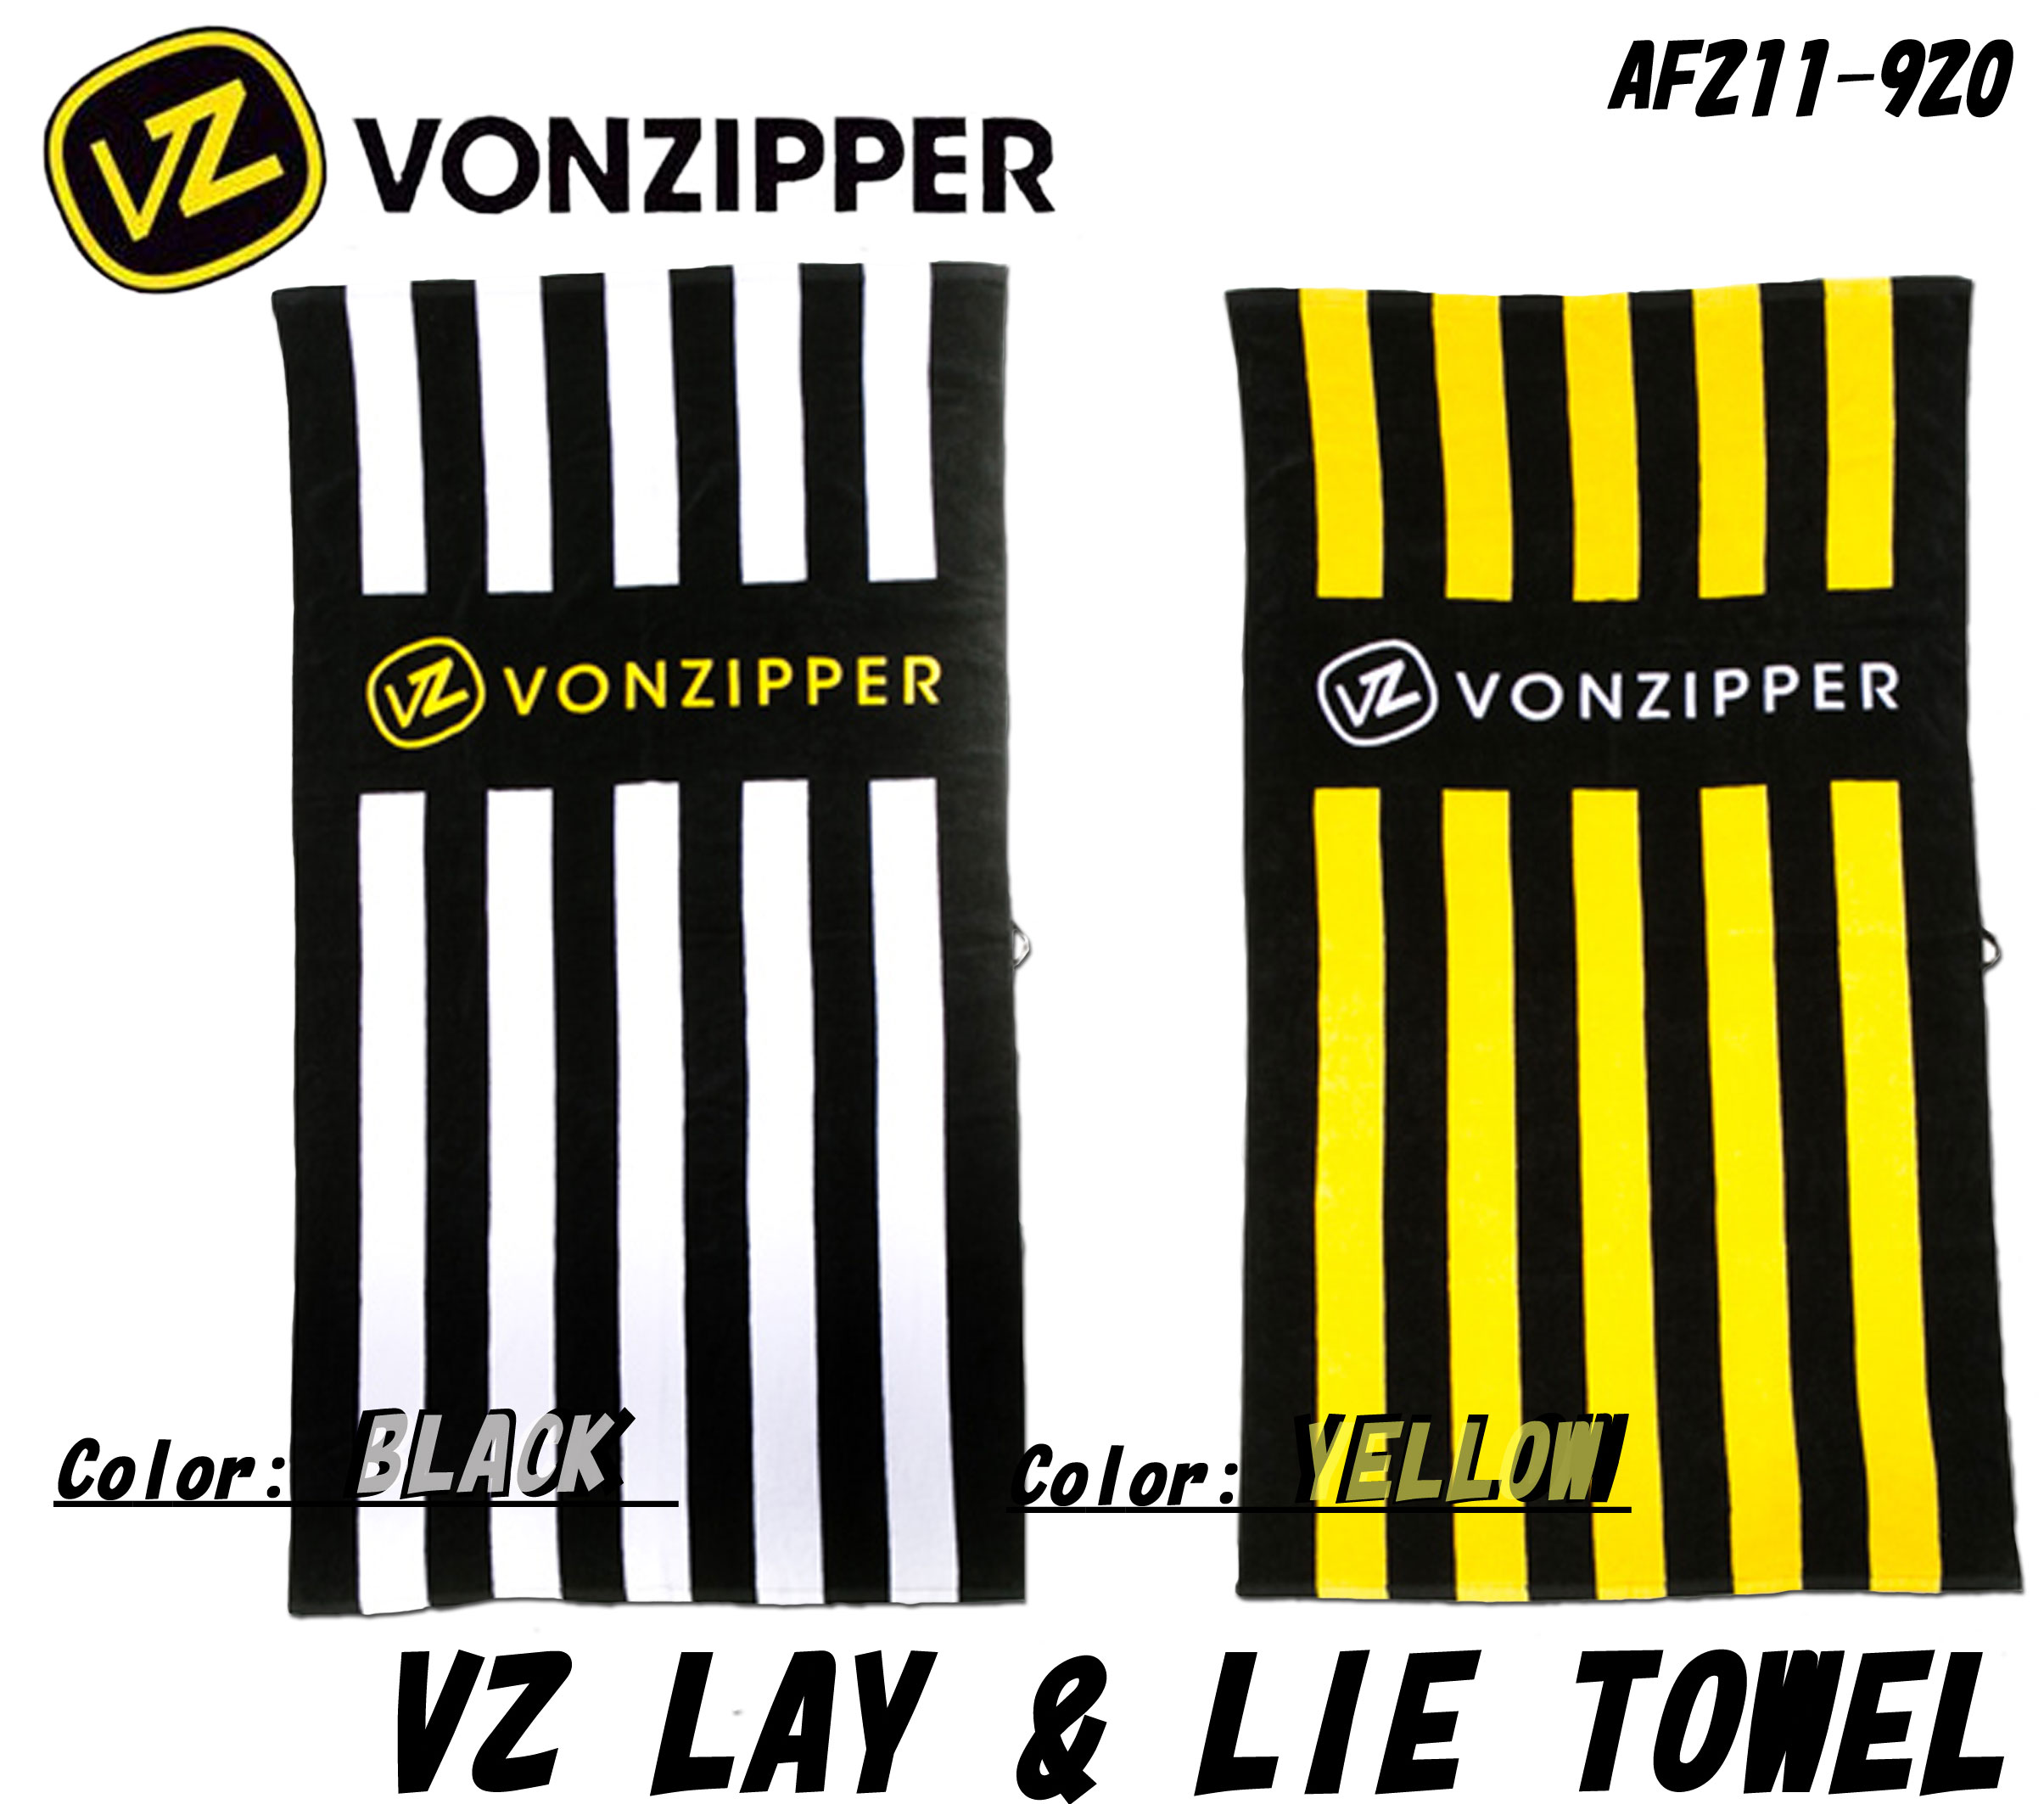 vonzipper_vz_lay_&_lie_towel_mein1